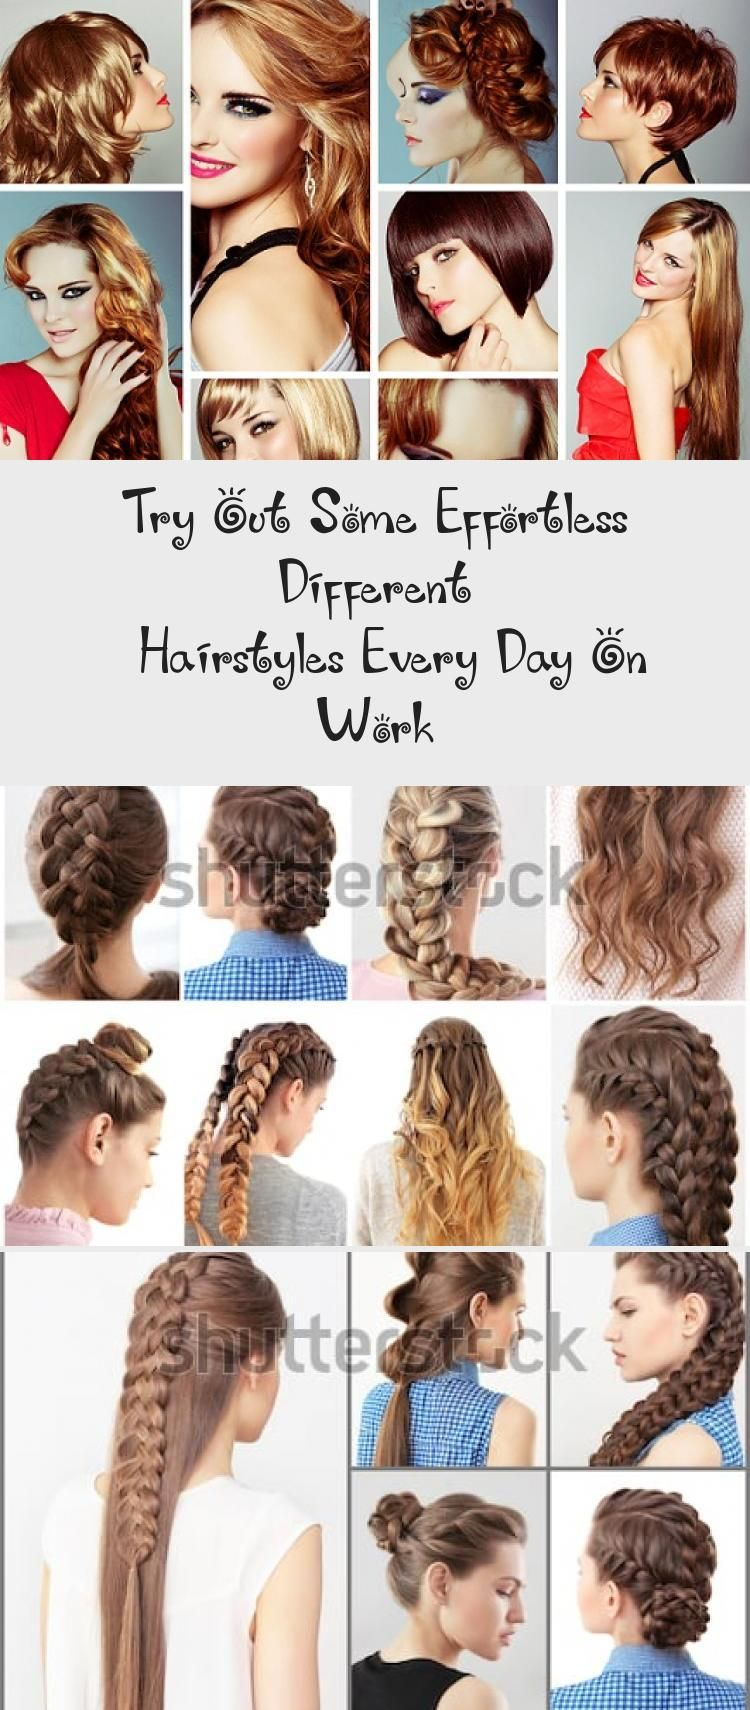 Try Out Some Effortless Different Hairstyles Every Day On Work 7 Easy Everyday Hairstyles For Each Day O In 2020 Hair Styles Everyday Hairstyles Different Hairstyles